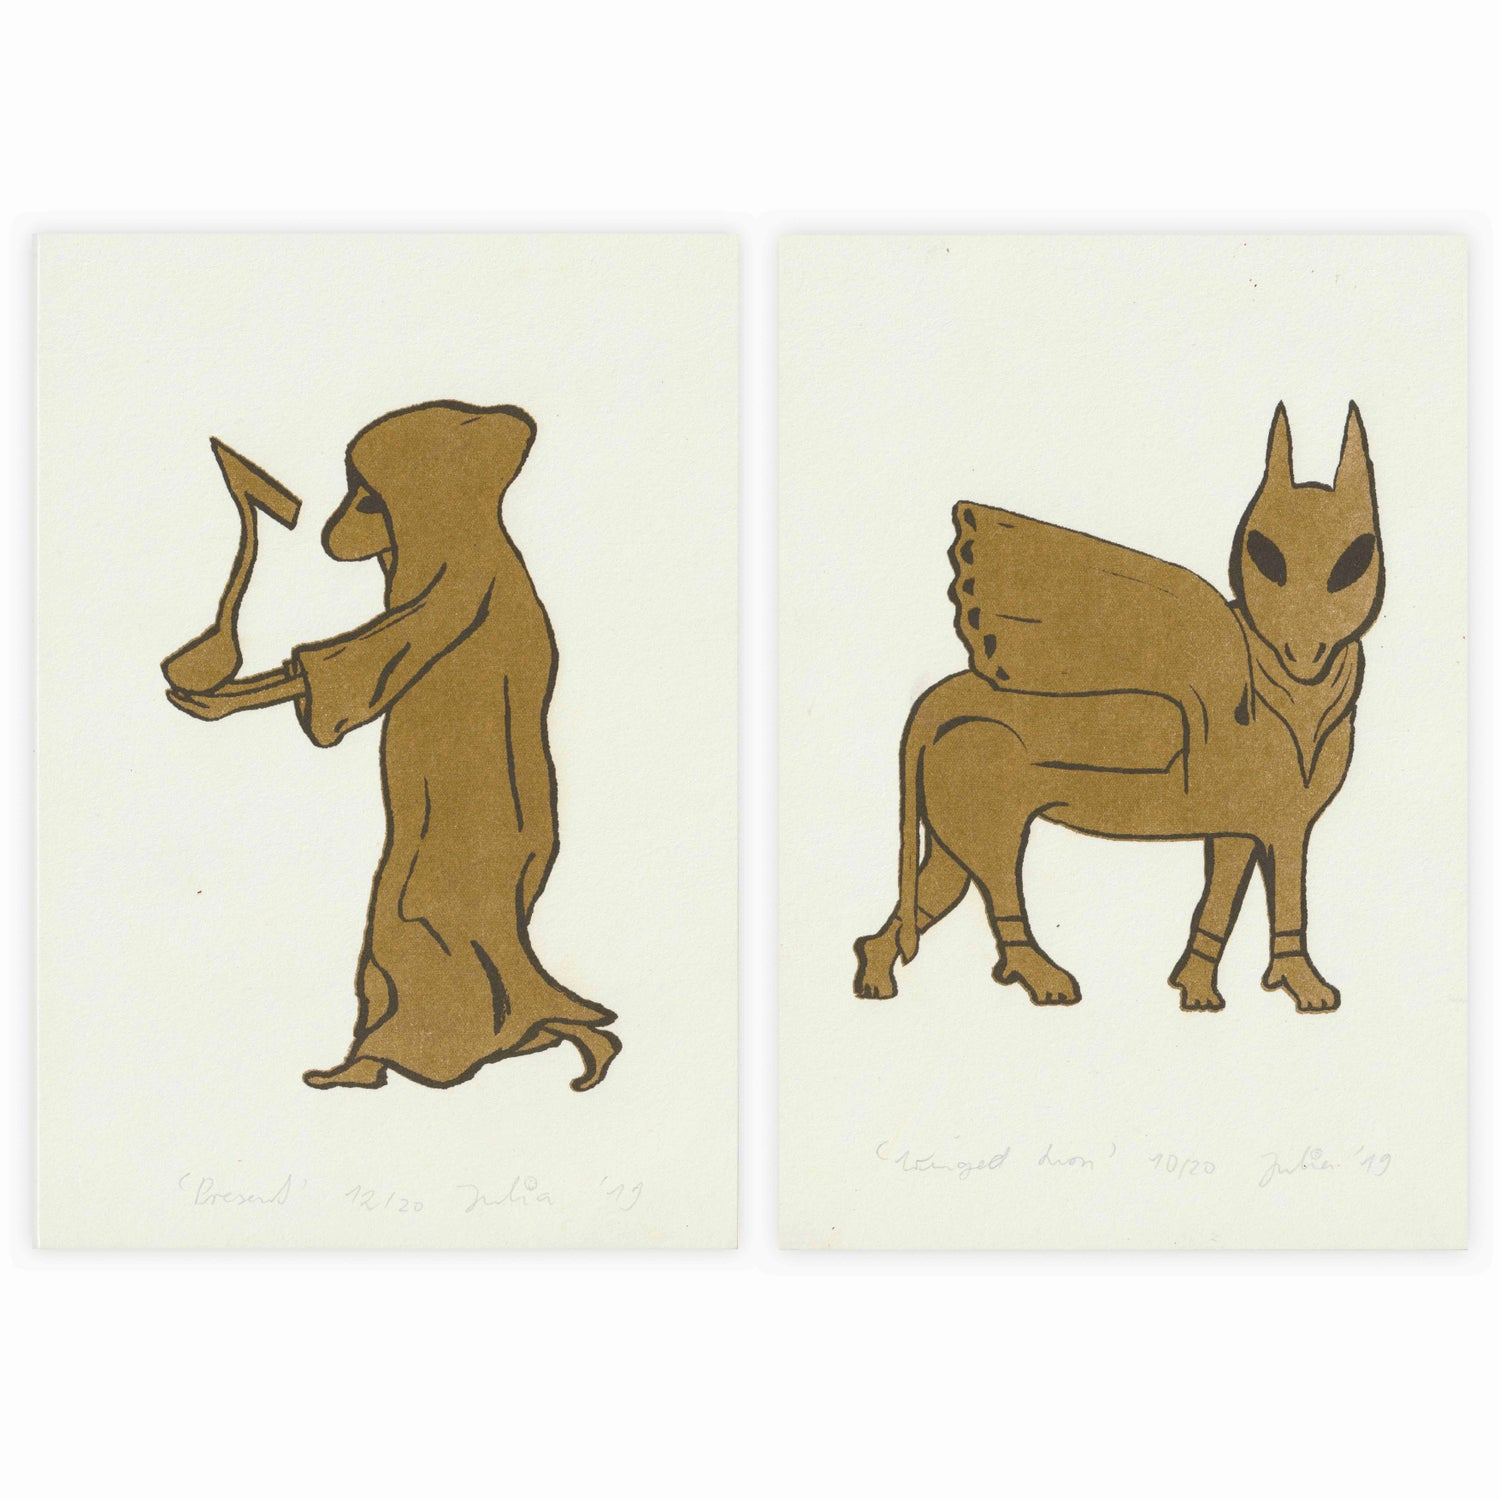 Image of Two-Print-Set 'Winged Lion' and 'Present' 15 x 22 cm